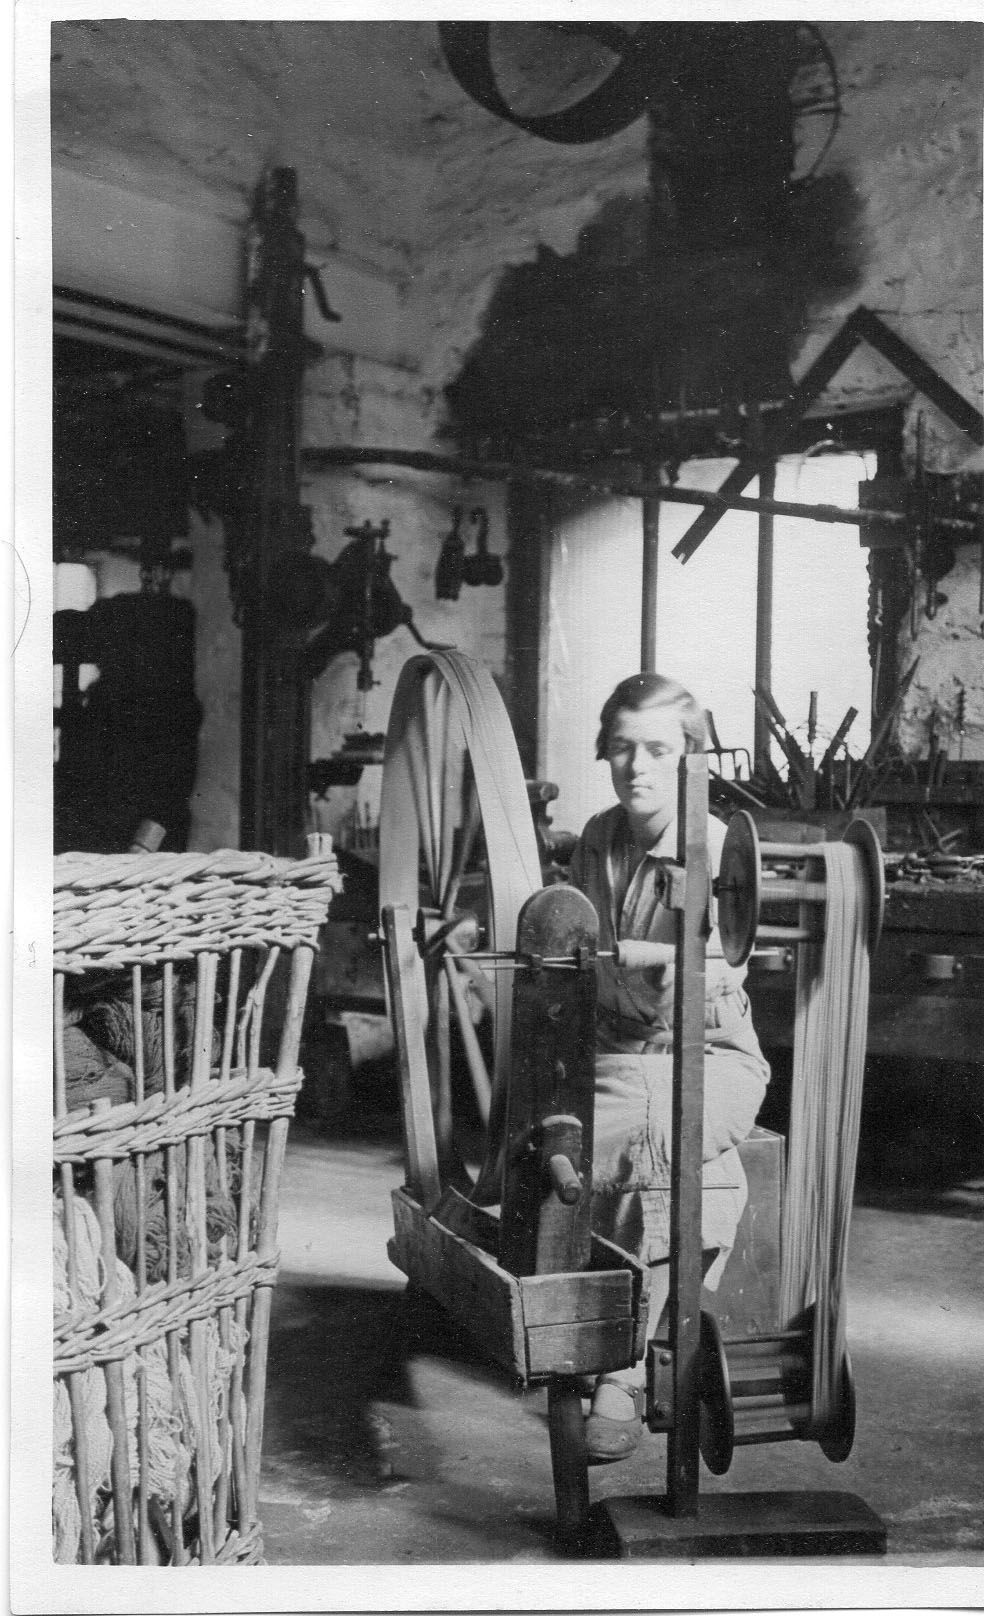 C Savage Photograph Industry - A Scene in a Woollen Mill Woman at Loom